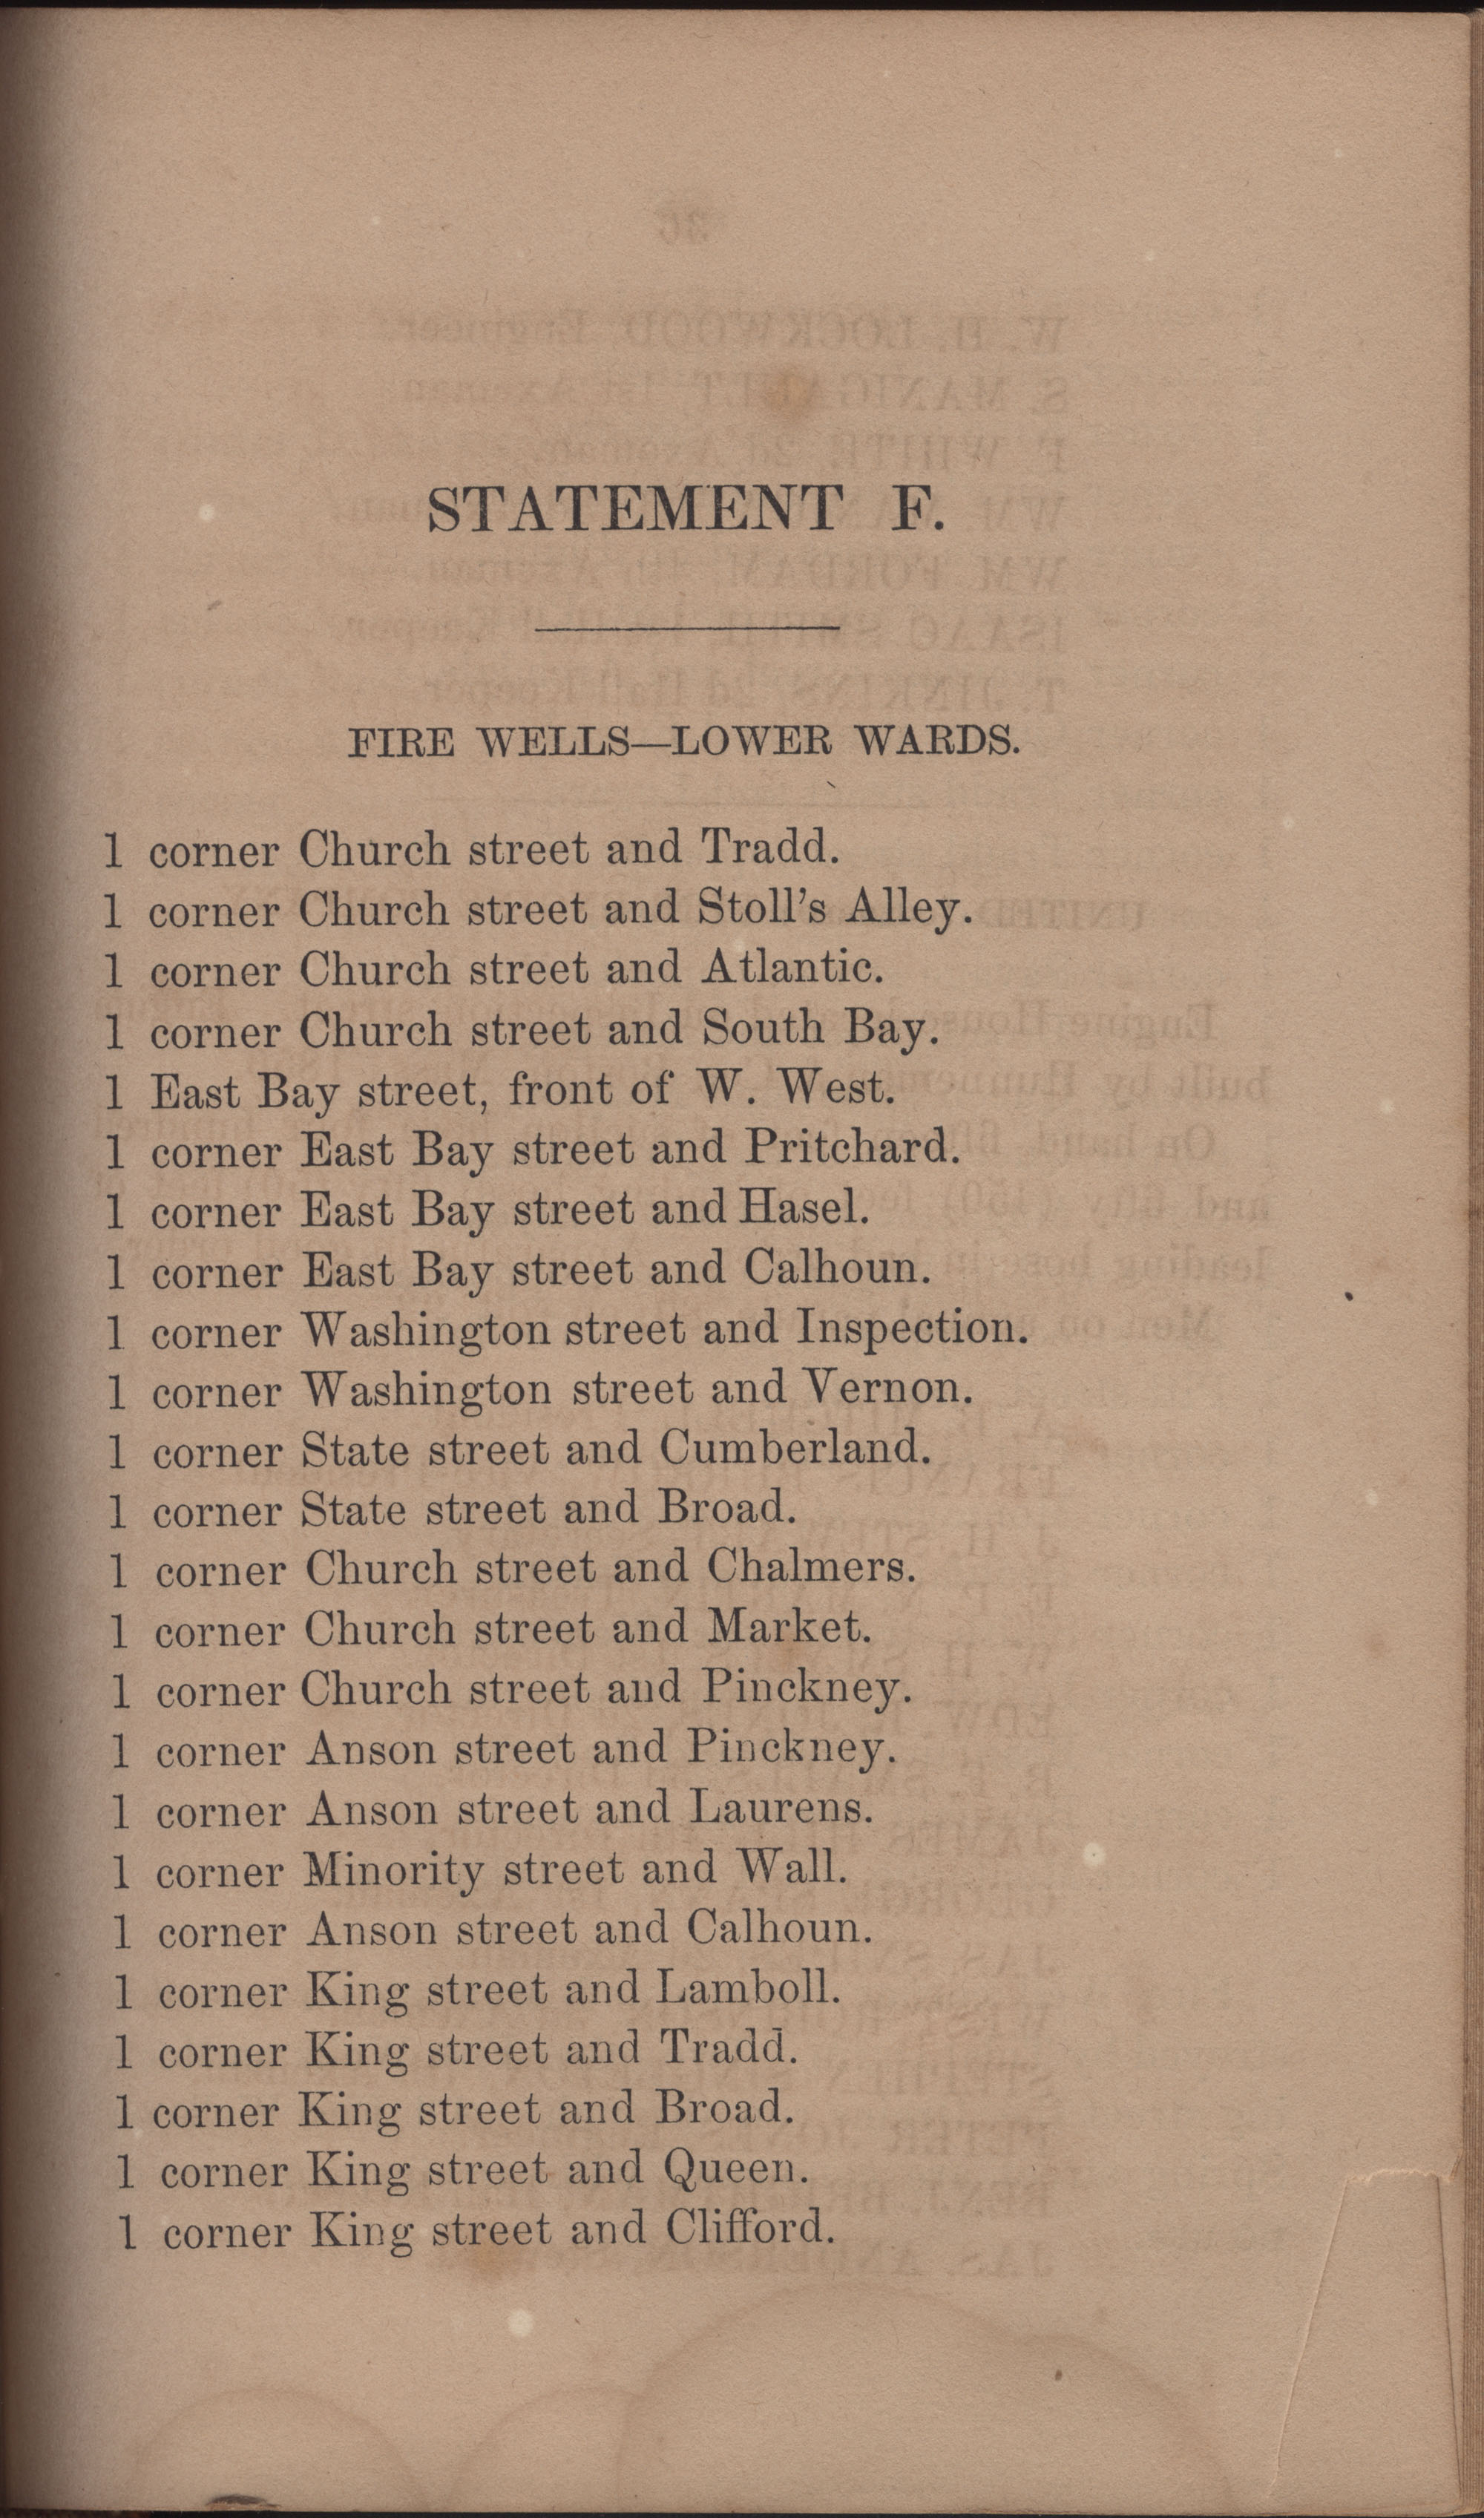 Annual Report of the Chief of the Fire Department of the City of Charleston, page 384